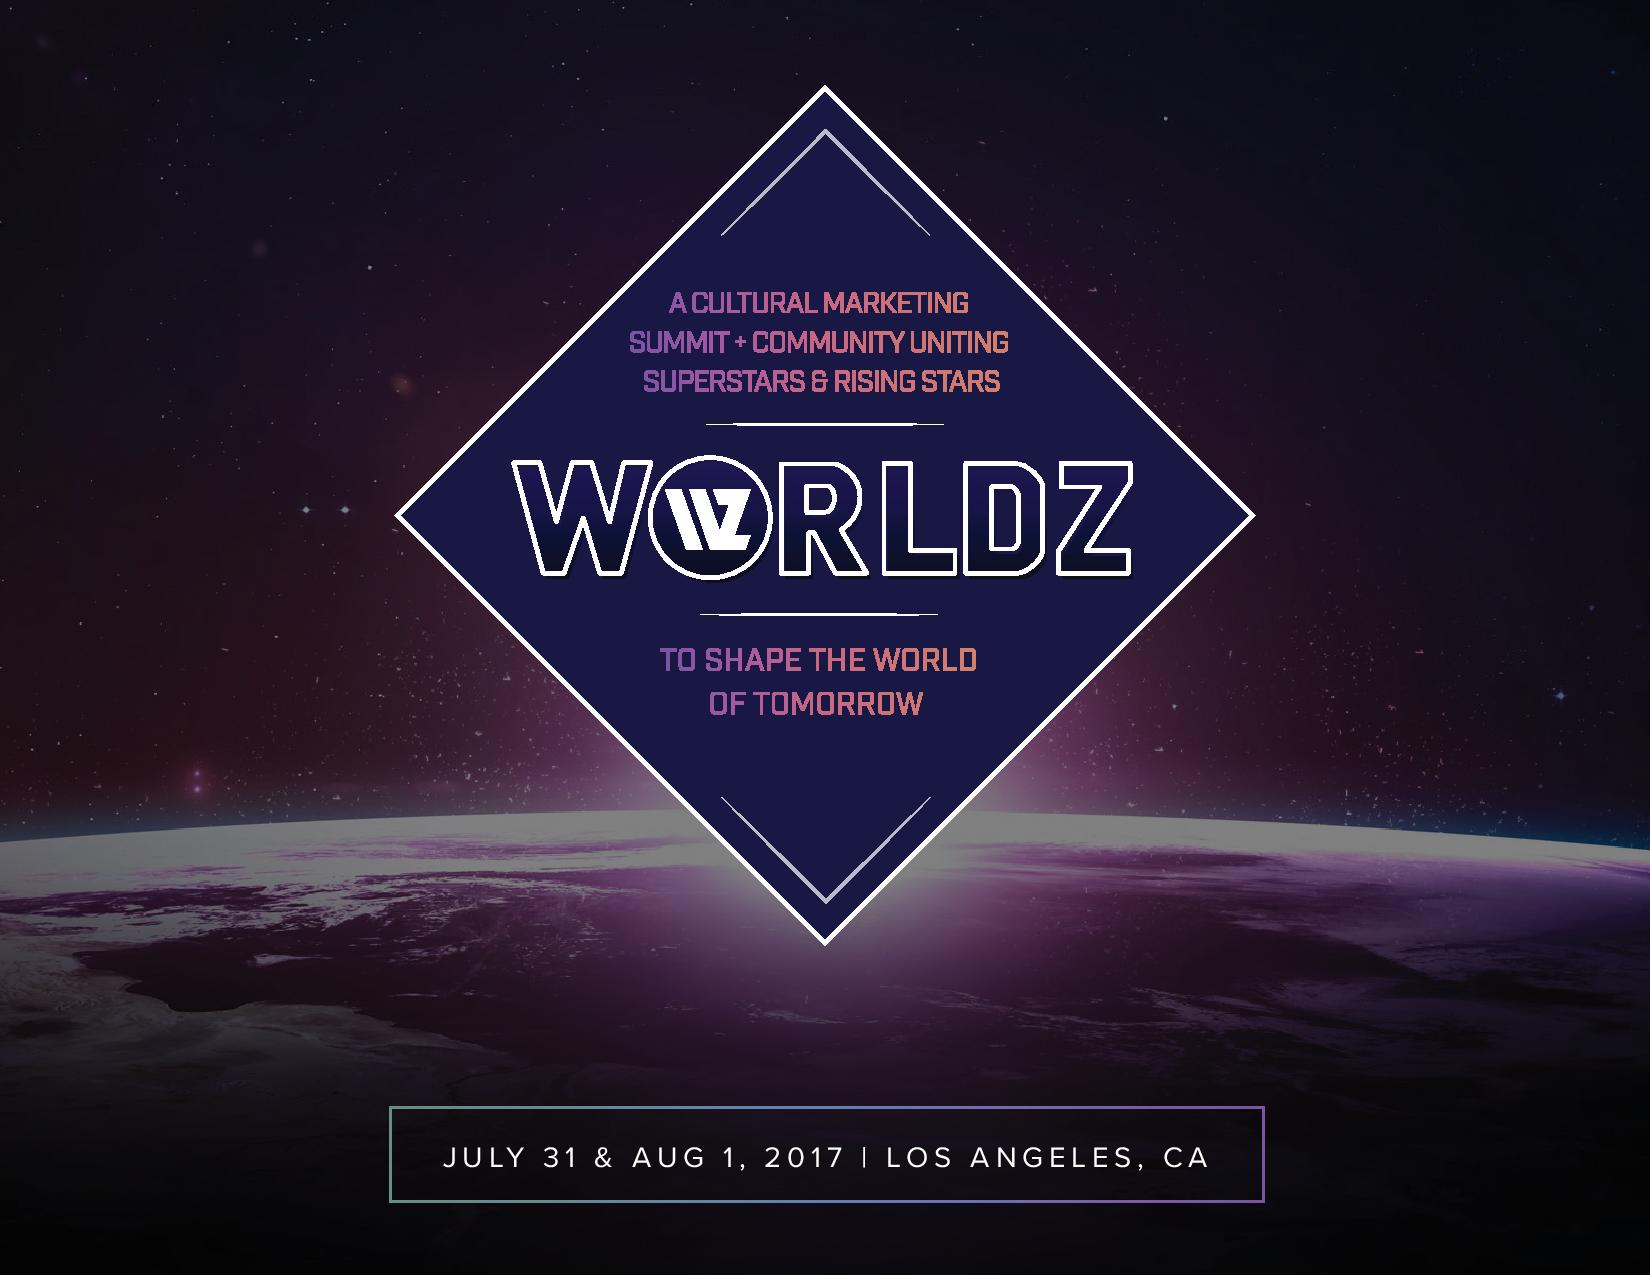 WORLDZ: The Marketing Summit Of Industry Titans Comes To LA